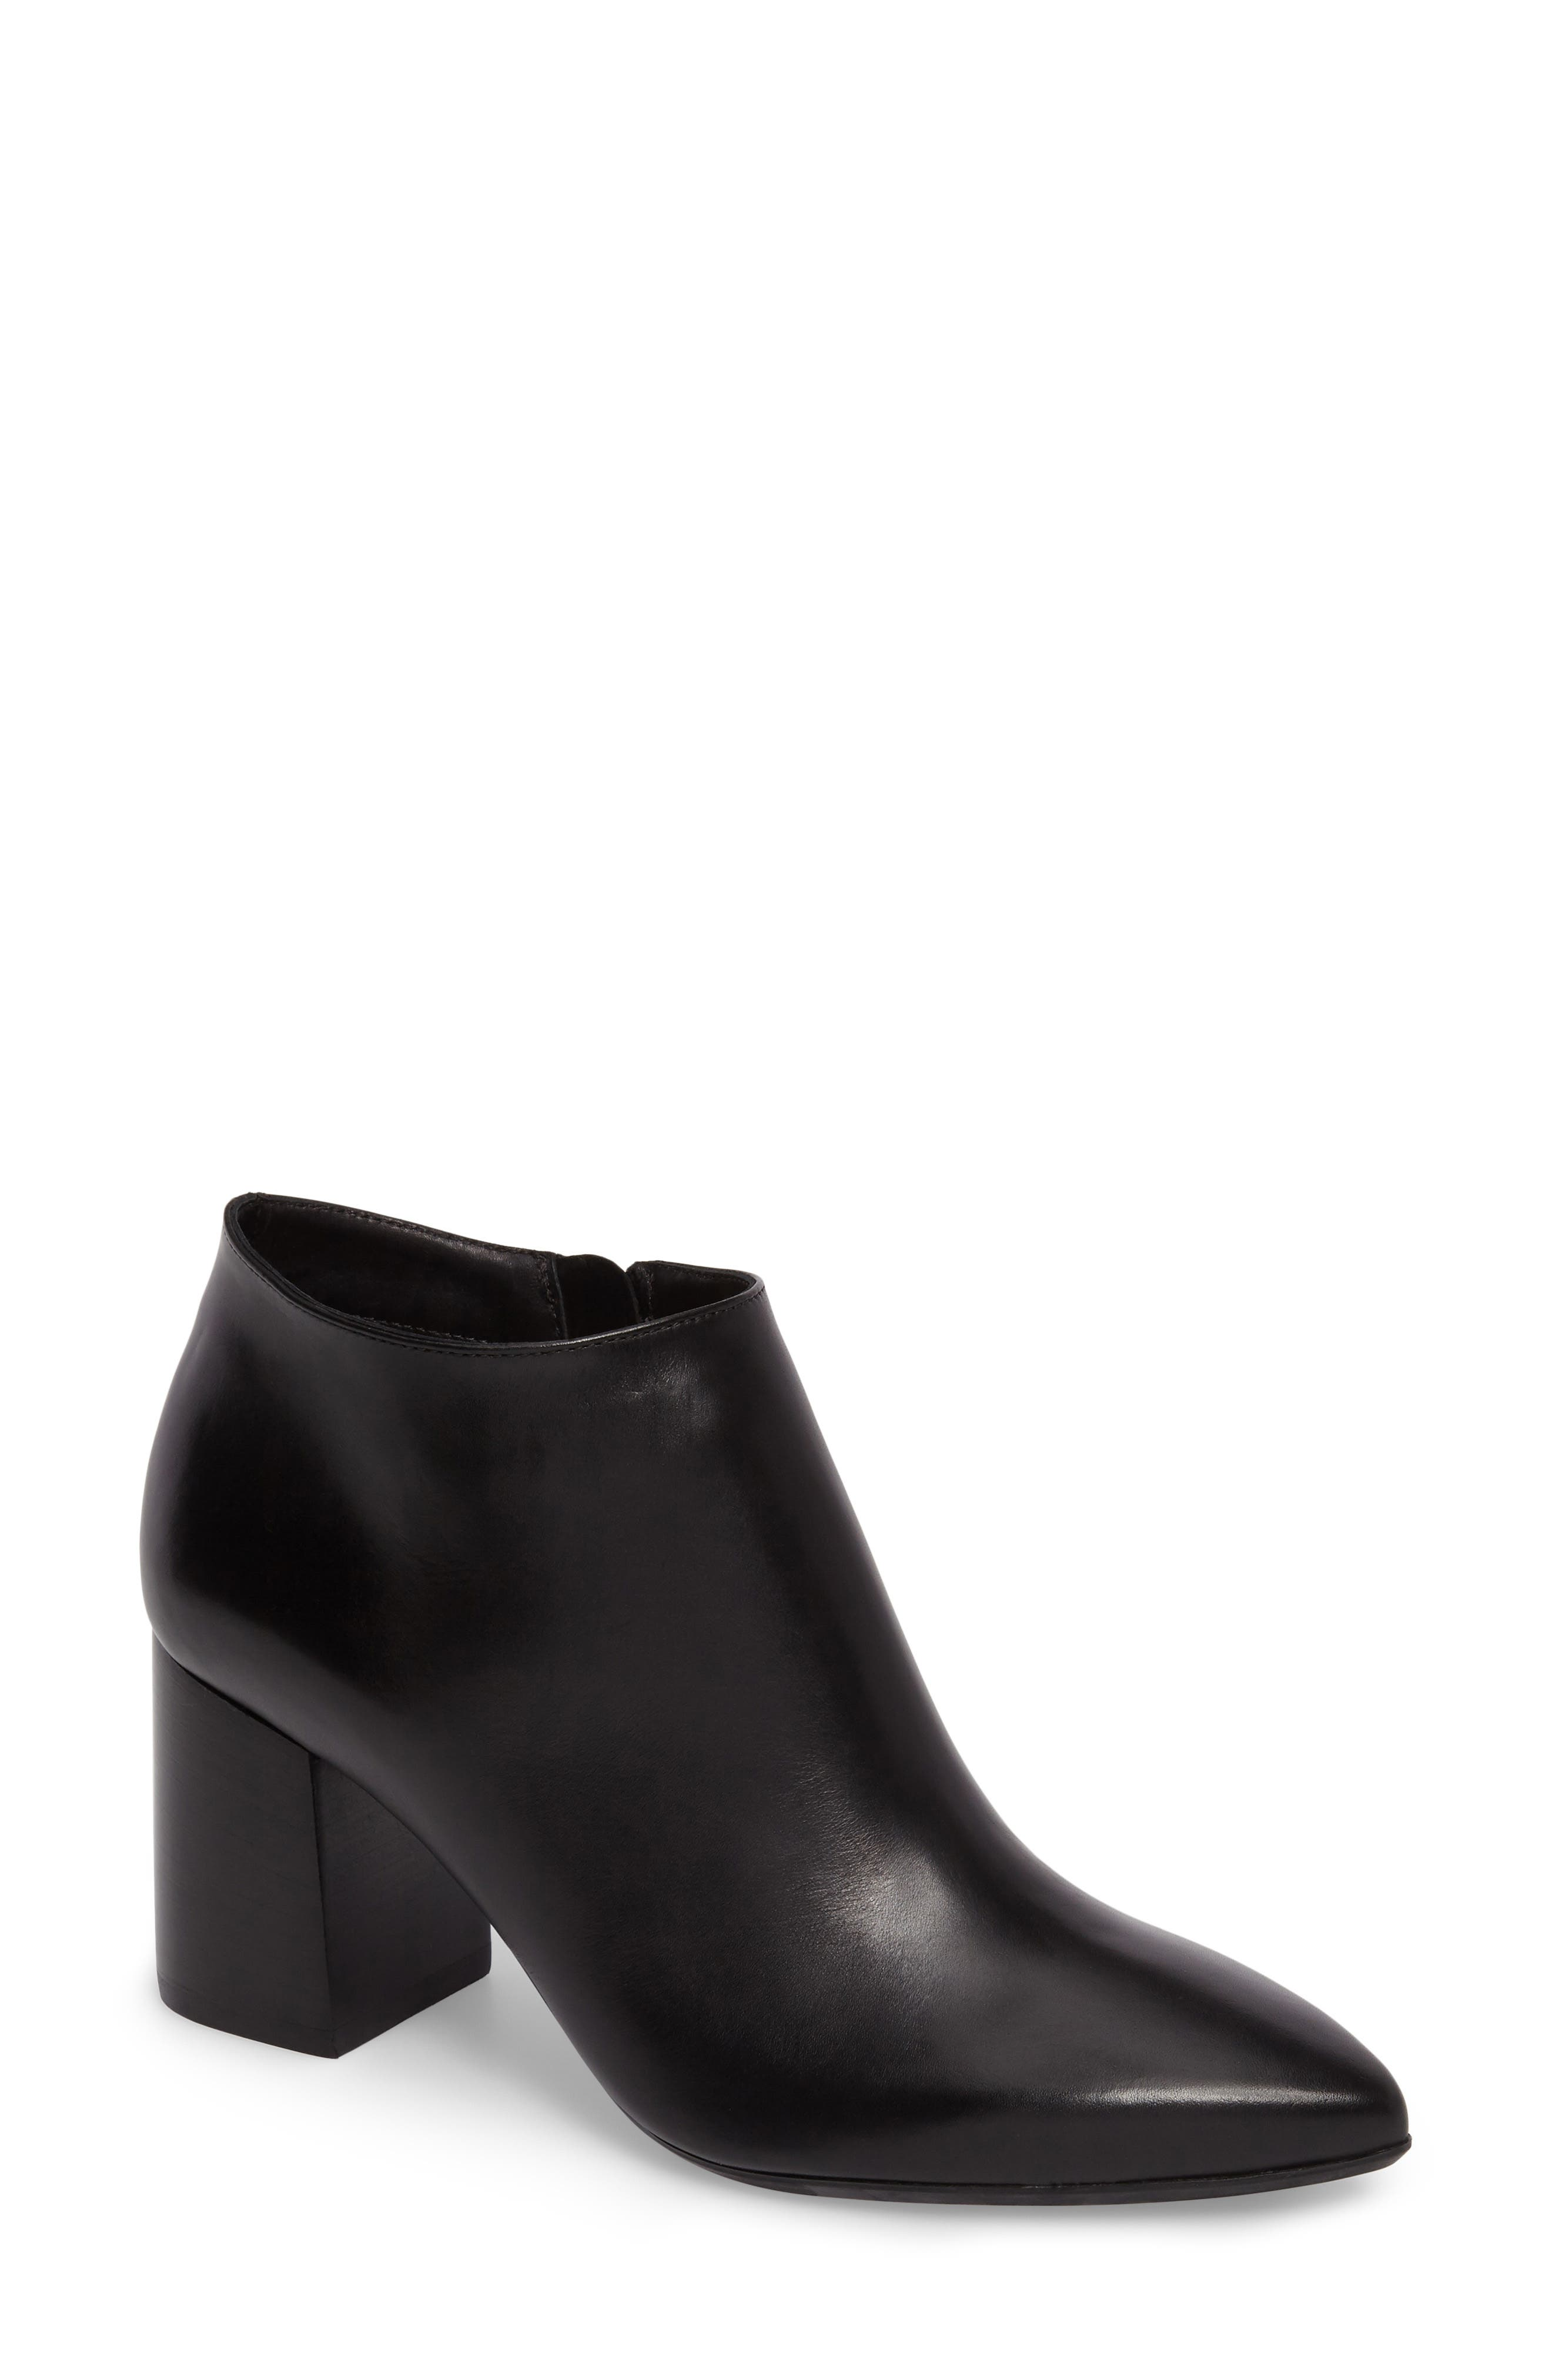 Maria Pointy Toe Bootie,                             Main thumbnail 1, color,                             001